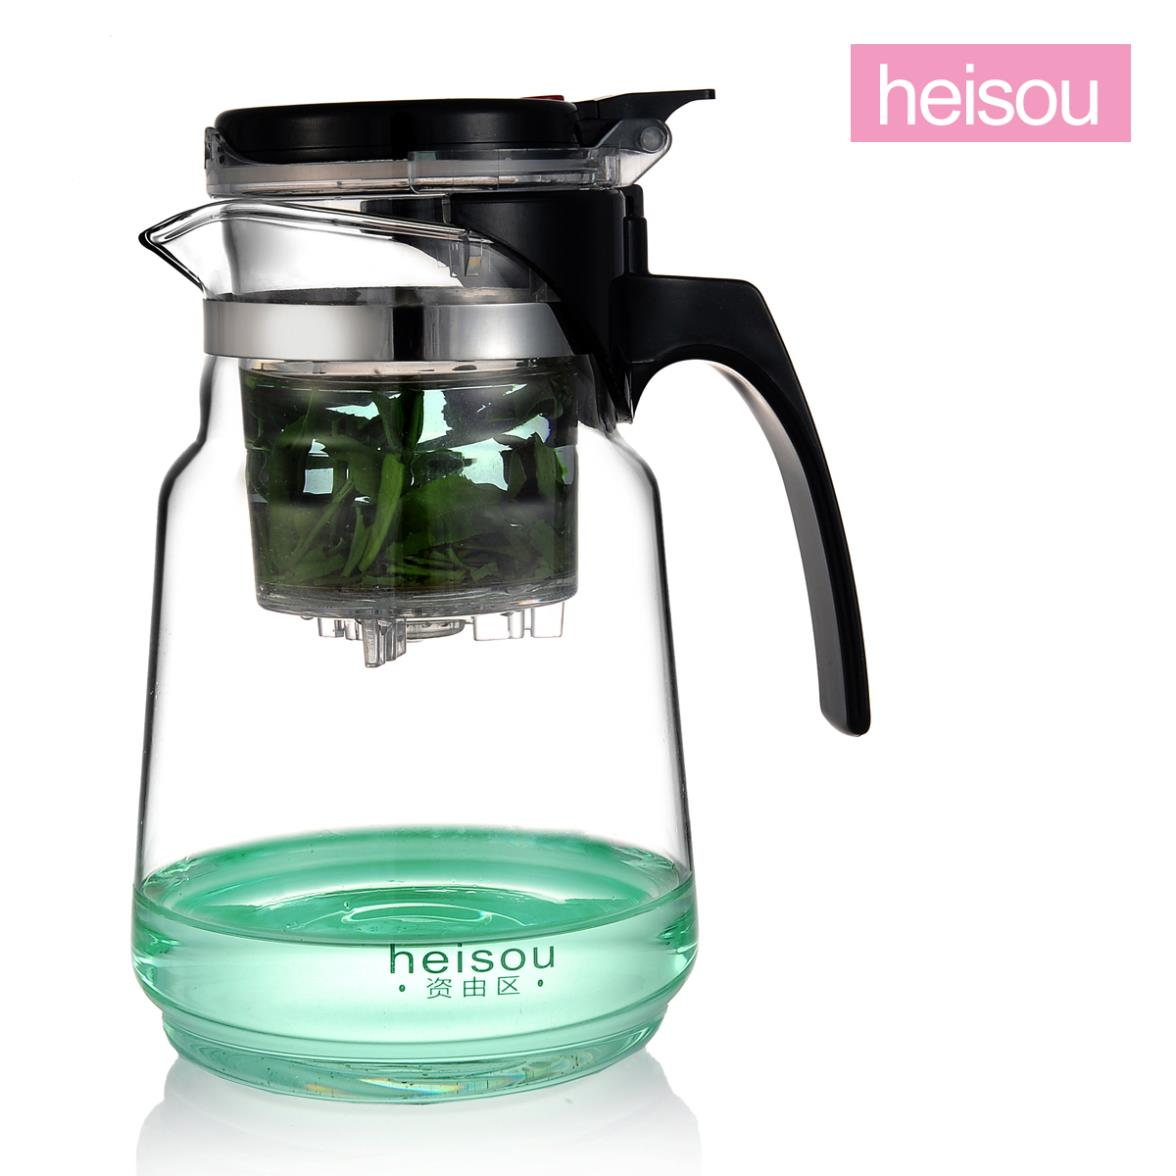 Heisou elegant cups quality goods heat-resistant glass tea set teapot filtering kung fu tea set KC157 in Taiwan(China (Mainland))